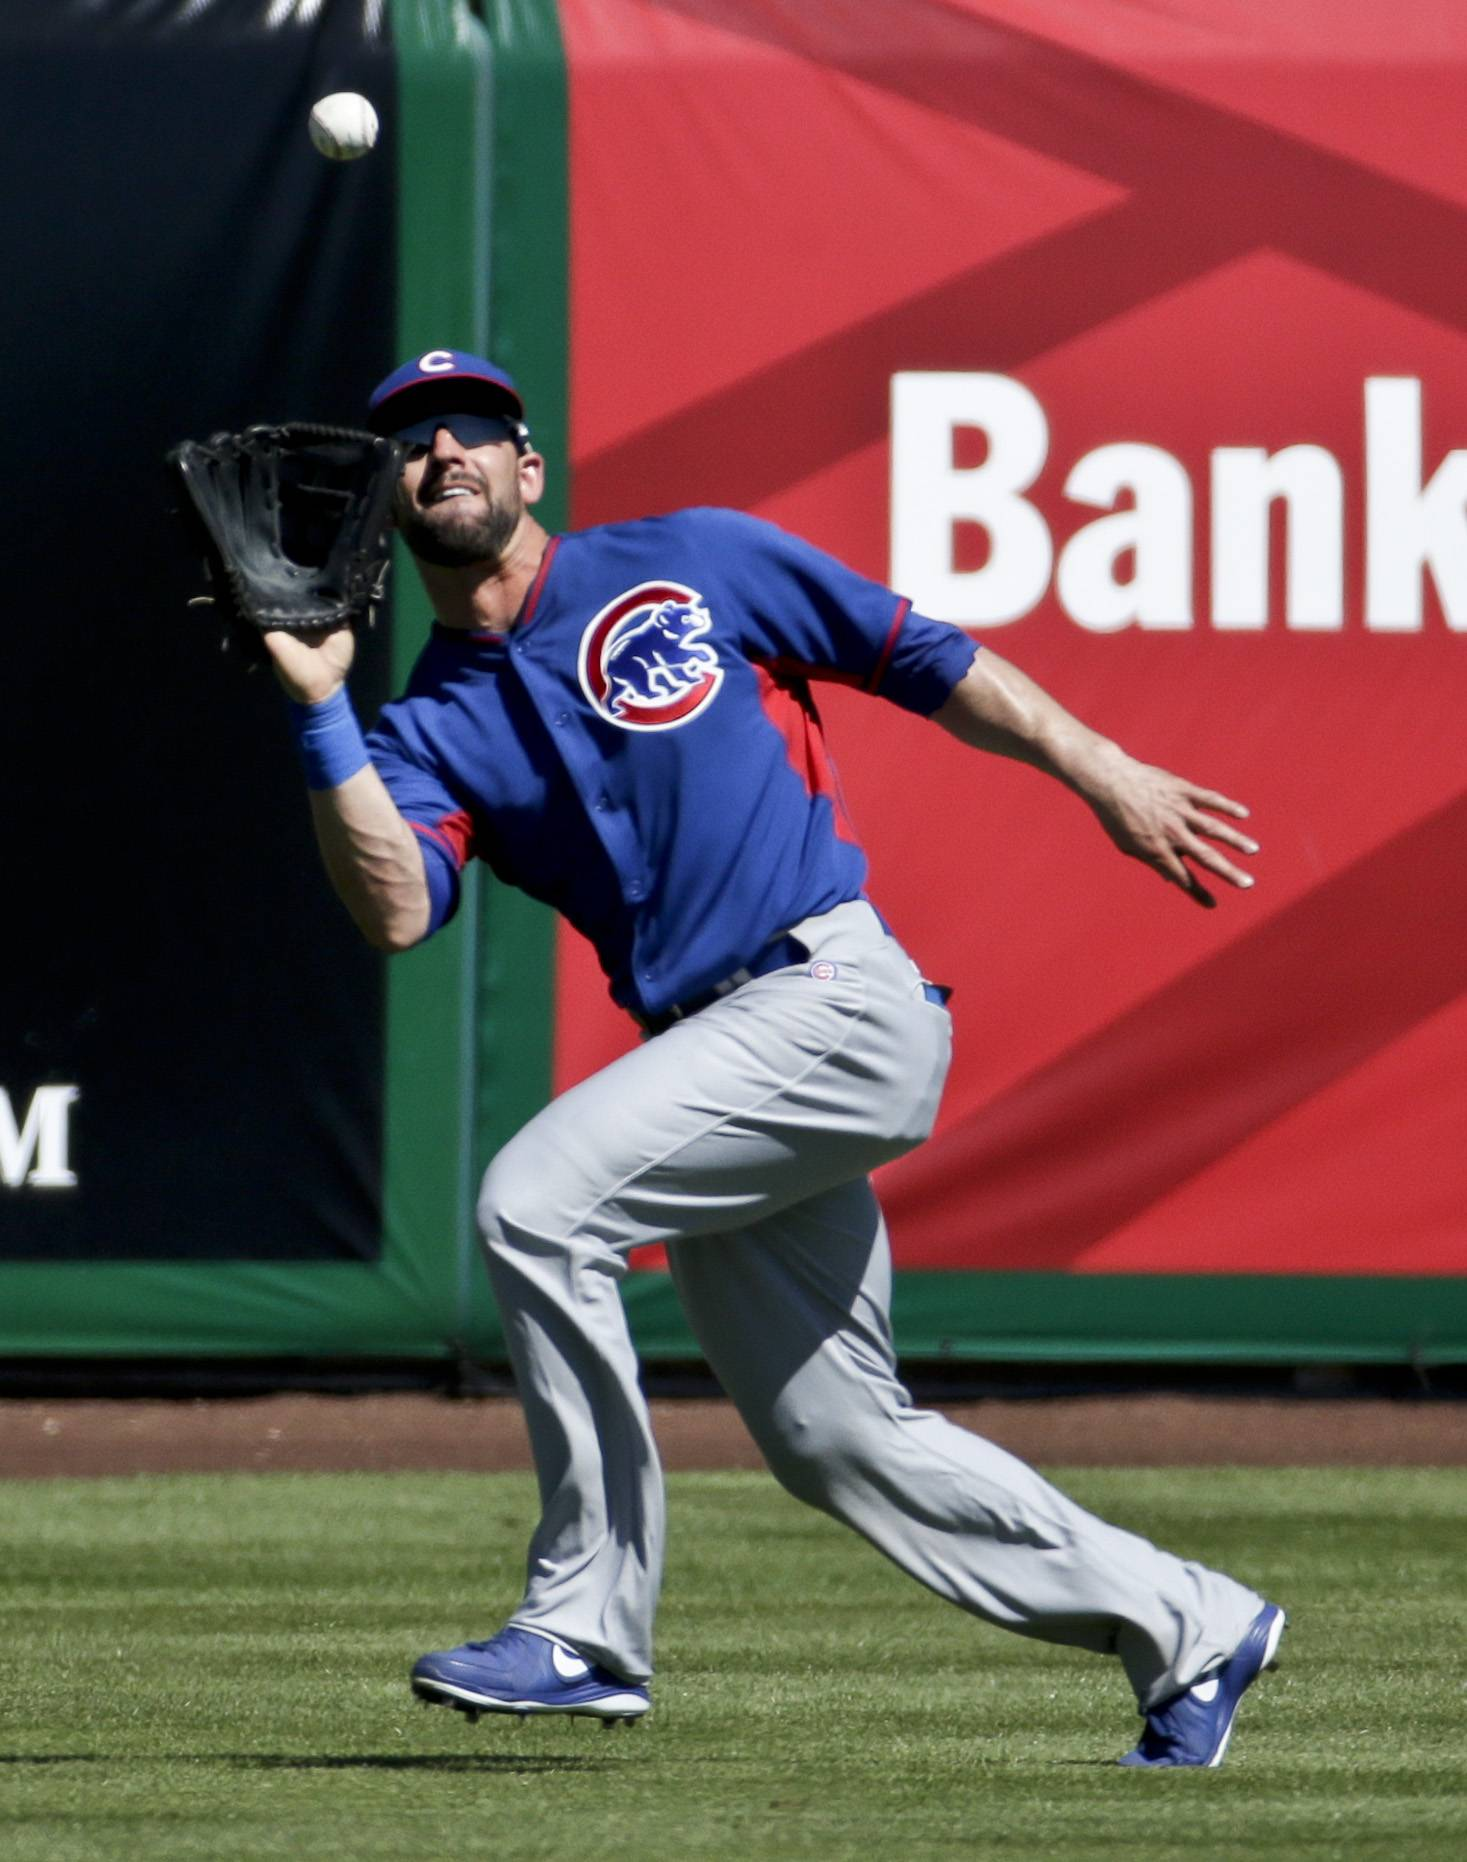 Cubs center fielder Ryan Kalish catches a flyball hit by San Francisco Giants' Brandon Belt during the first inning of a spring game in Scottsdale, Ariz., earlier this month.